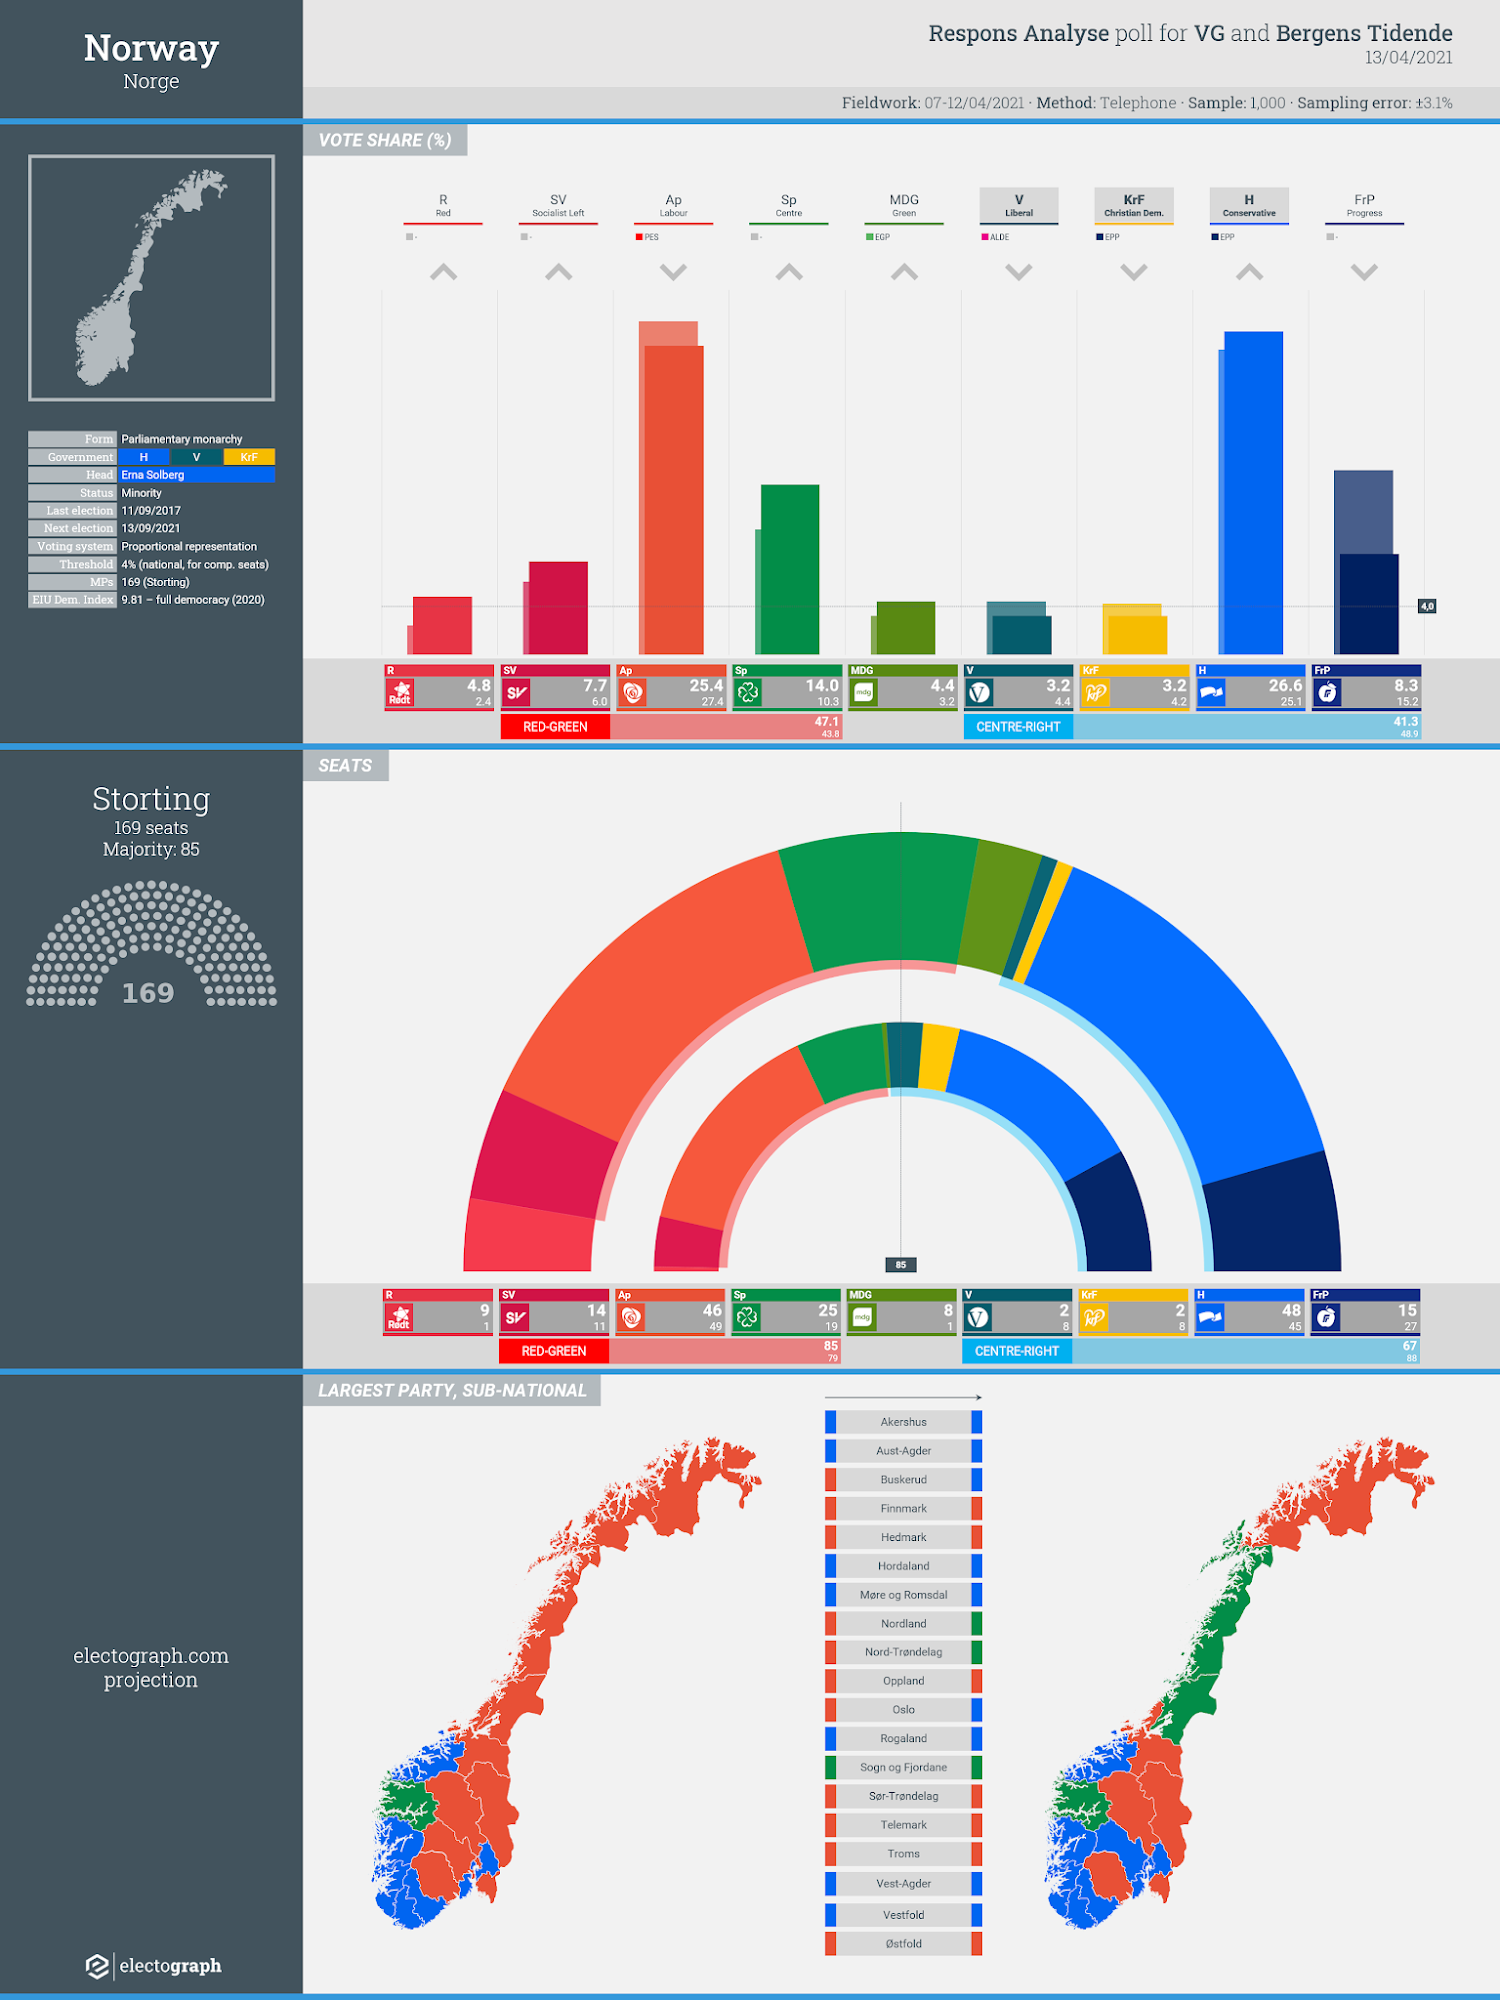 NORWAY: Respons Analyse poll chart for VG and Bergens Tidende, 13 April 2021